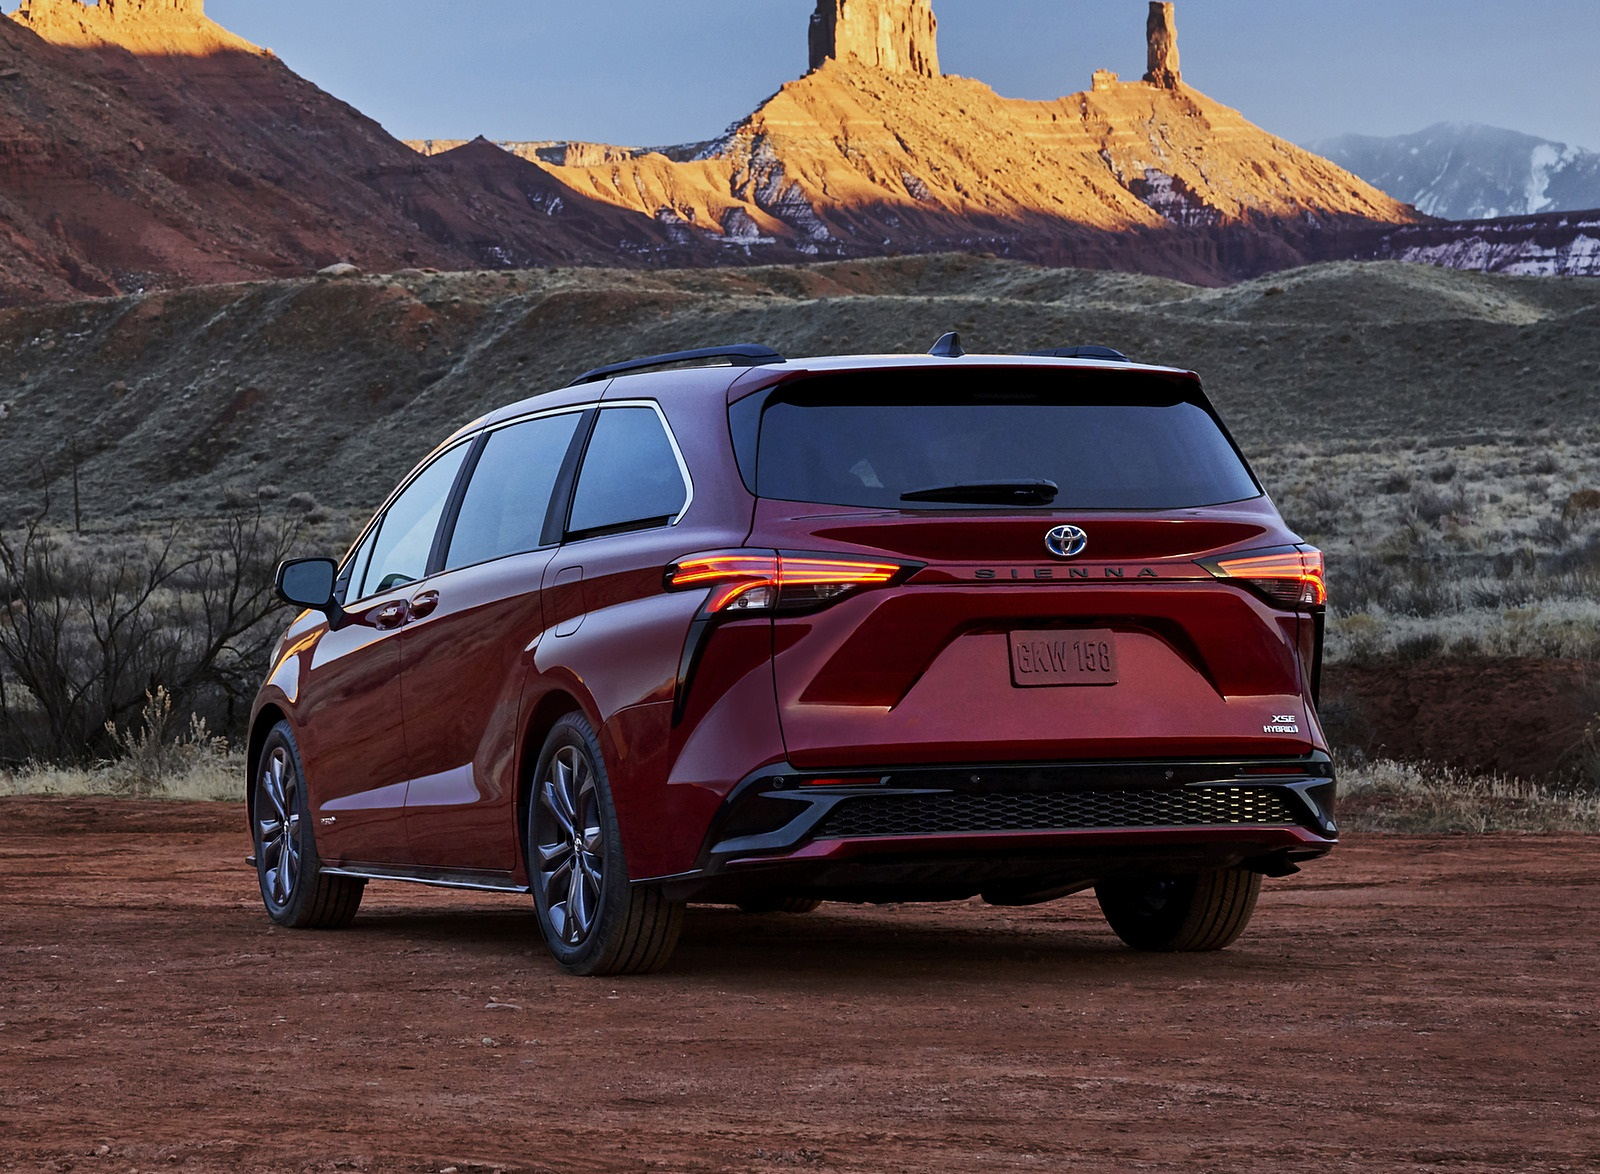 2021 Toyota Sienna XSE Hybrid Rear Three-Quarter Wallpapers #6 of 11